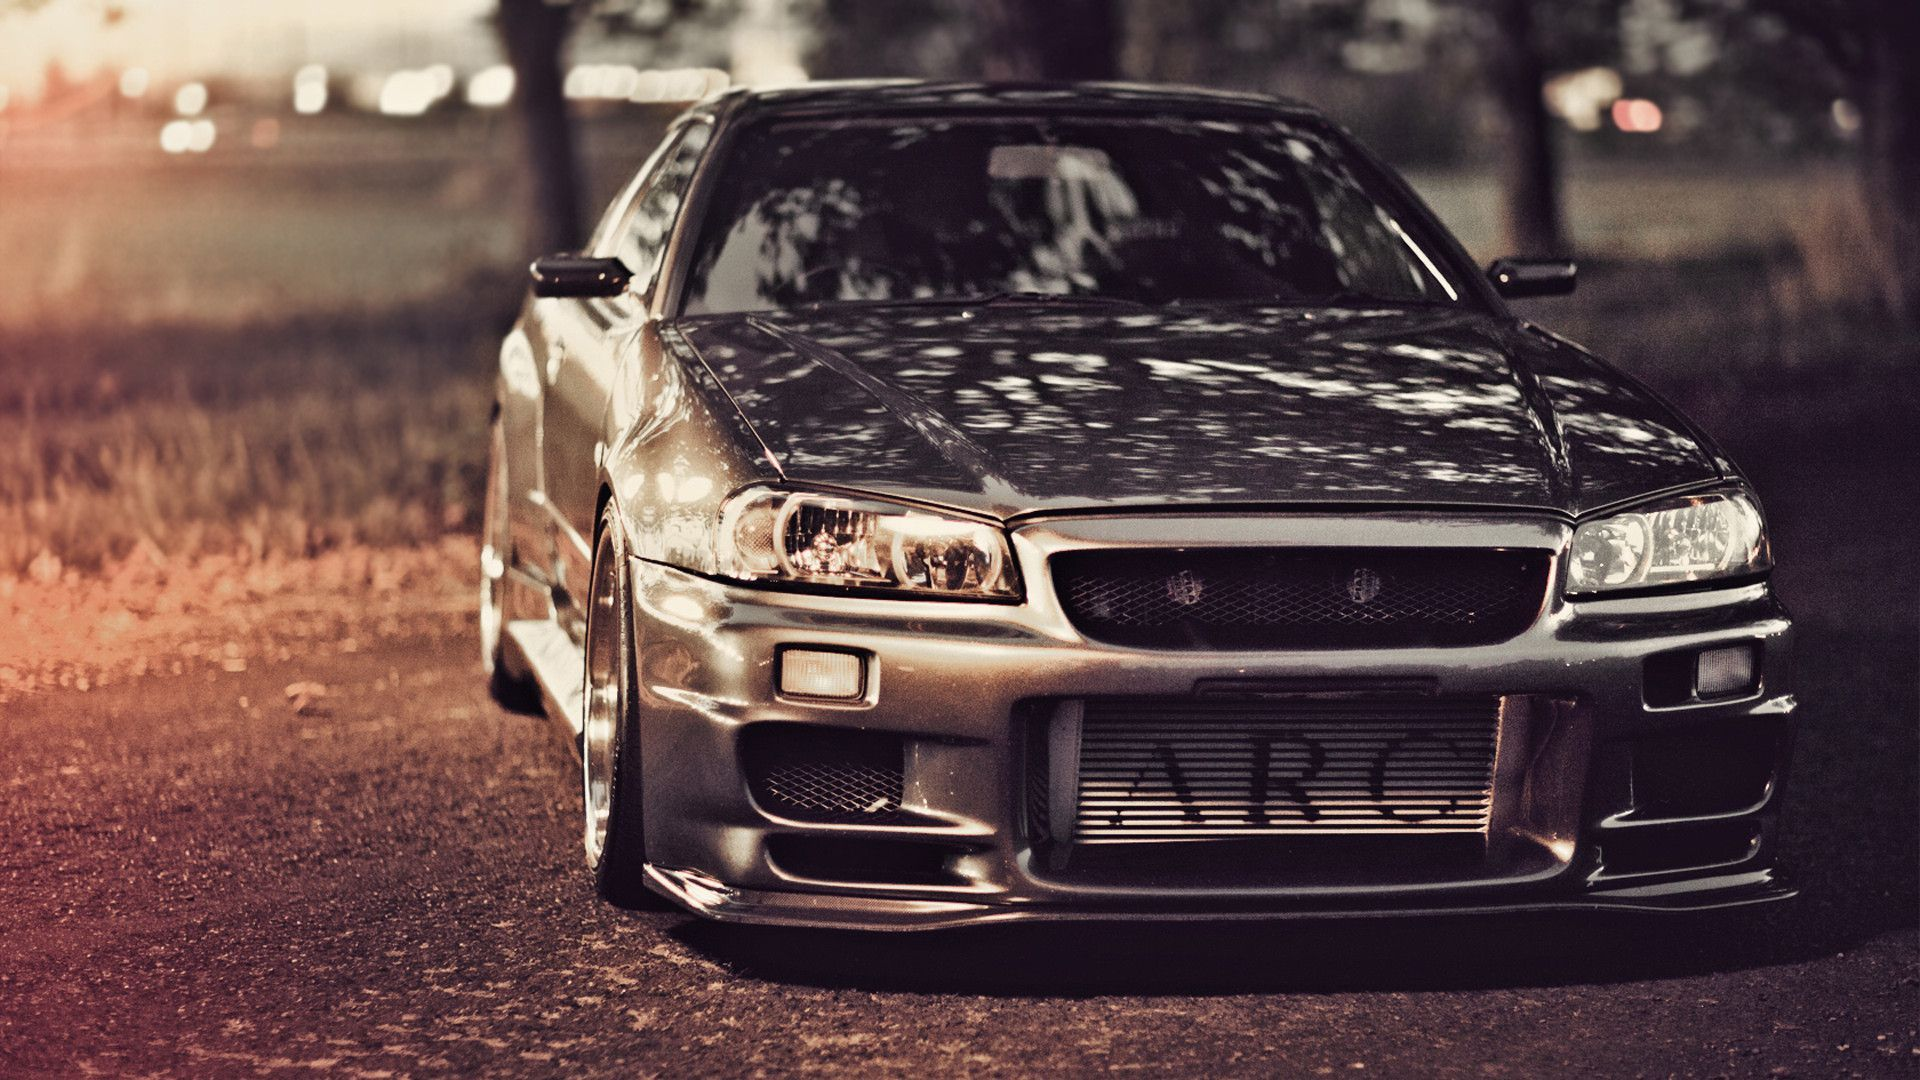 Nissan Skyline GTR R34 Wallpapers (51 Wallpapers)